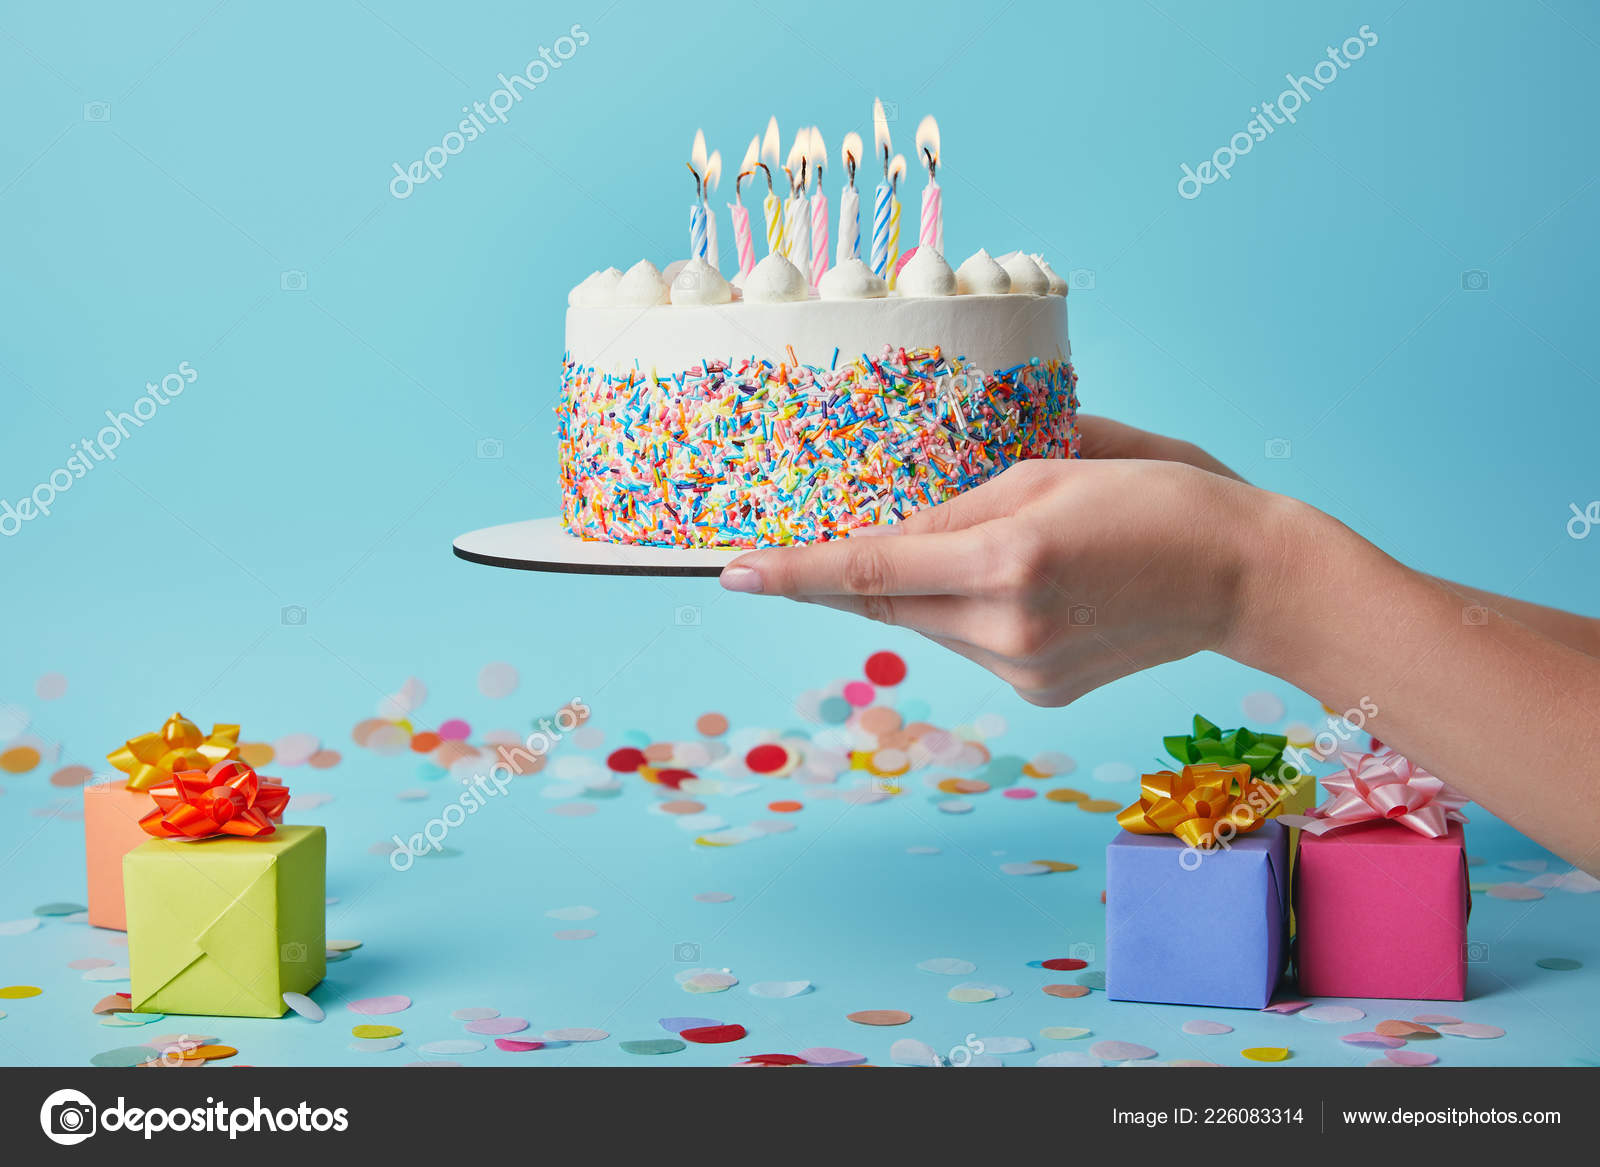 Cropped View Of Woman Holding Birthday Cake With Candles On Blue Background Confetti And Gifts Stock Image